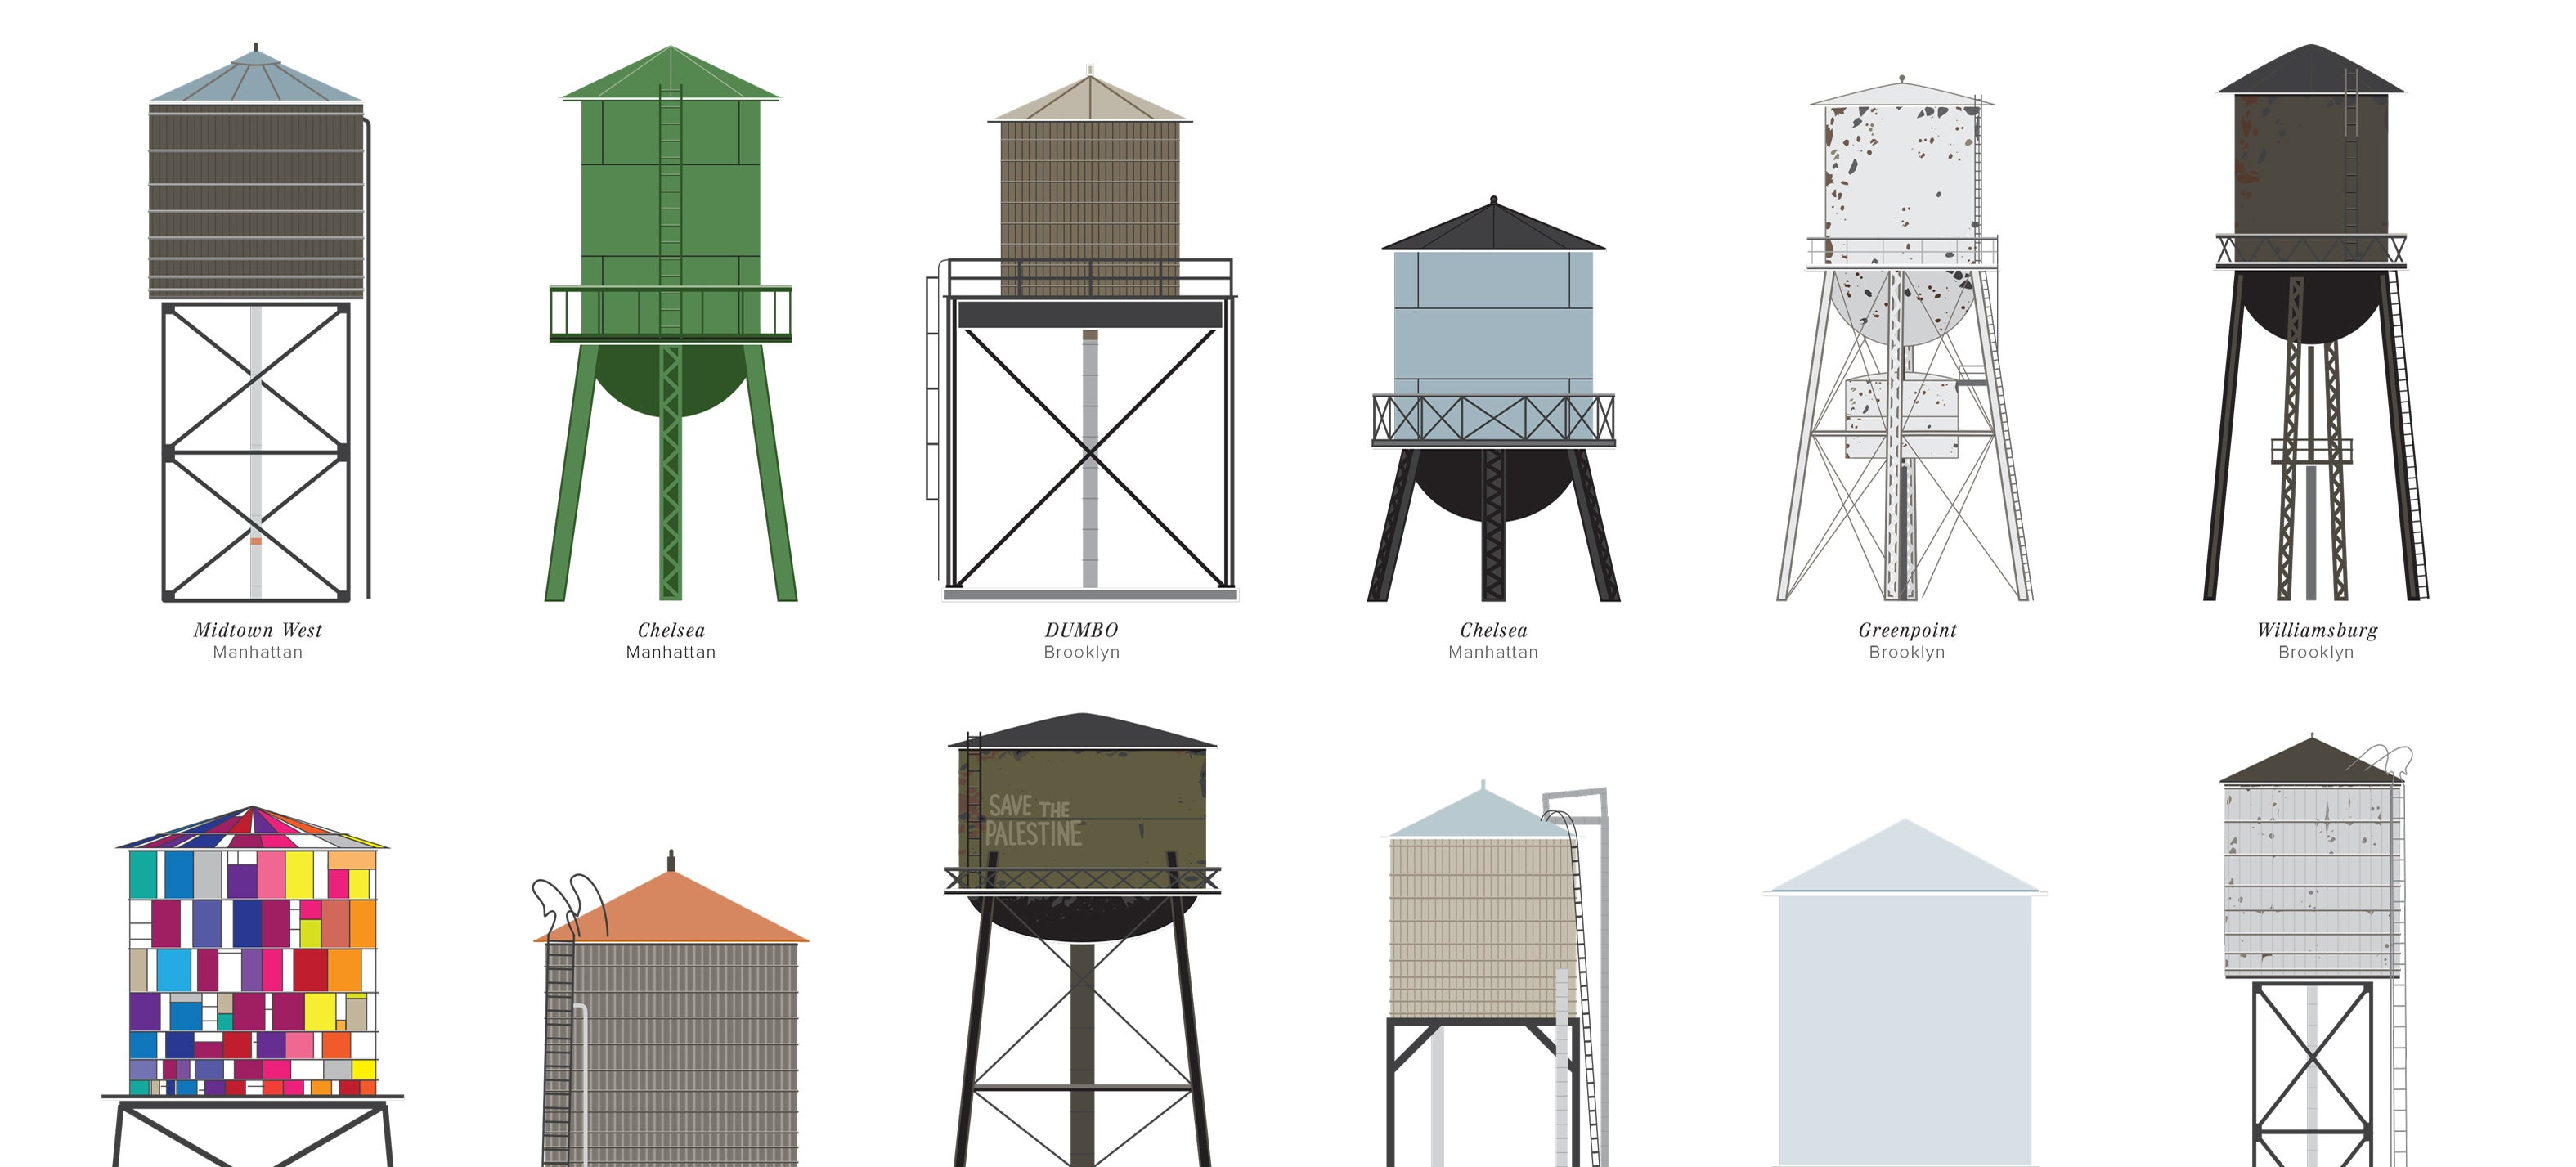 The Dirty, Dilapidated And Delightful Water Towers Of New York City